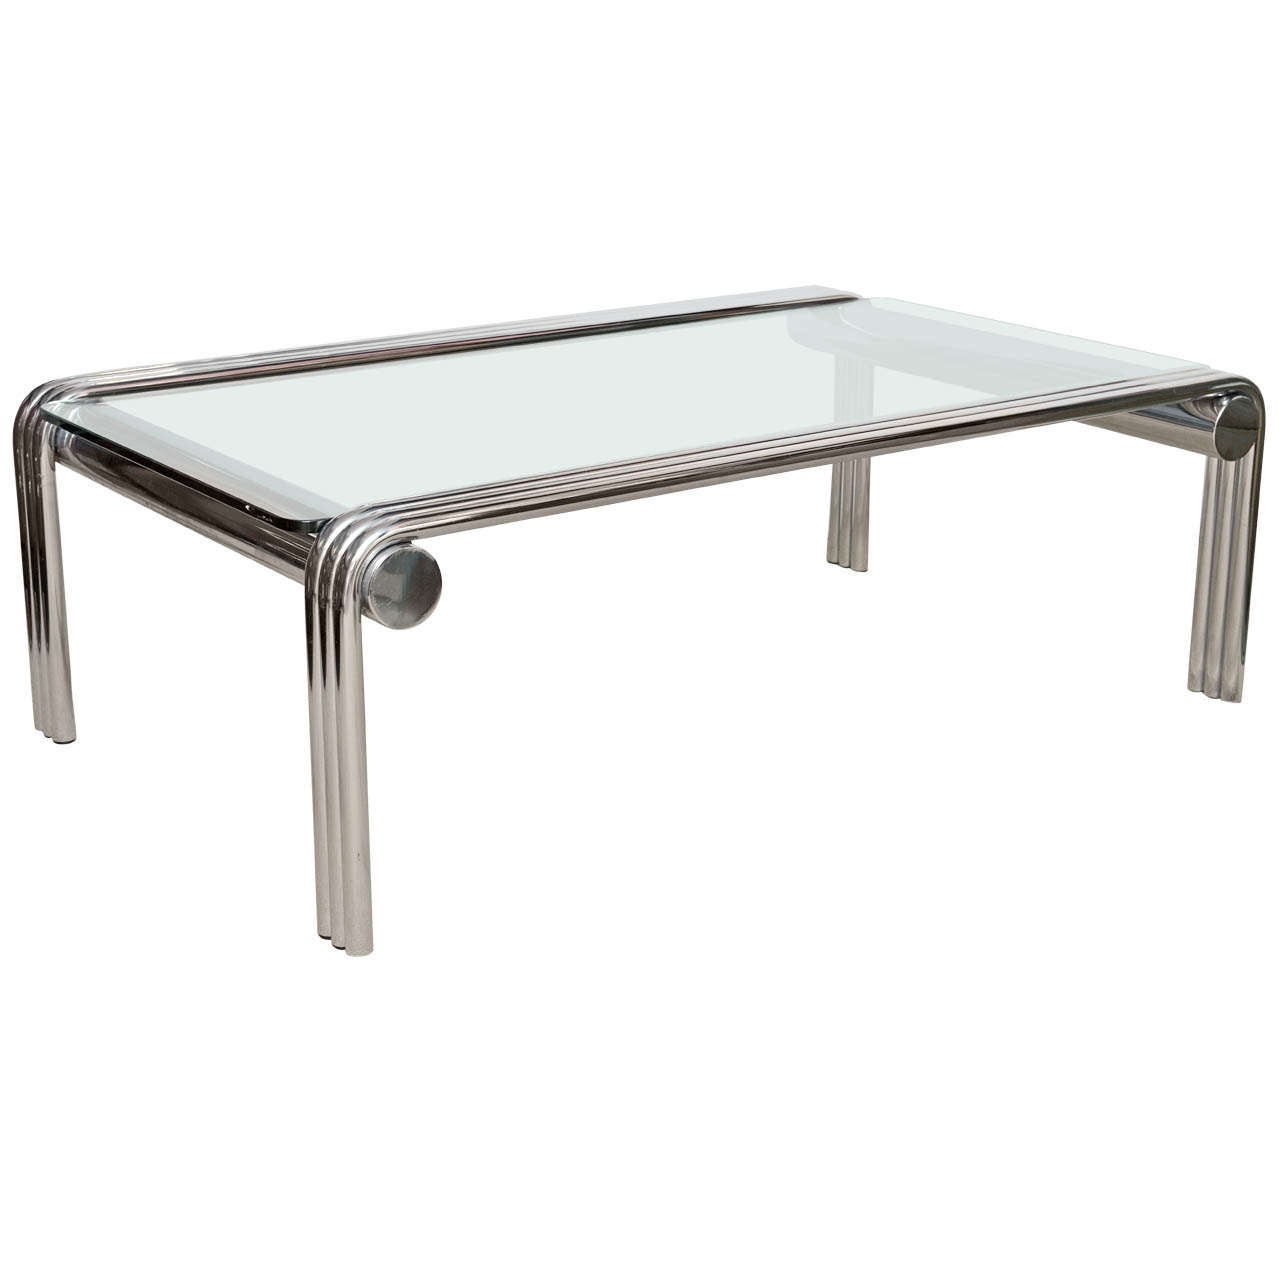 Mid century tubular chrome and glass coffee table at 1stdibs for Designer cocktail tables glass